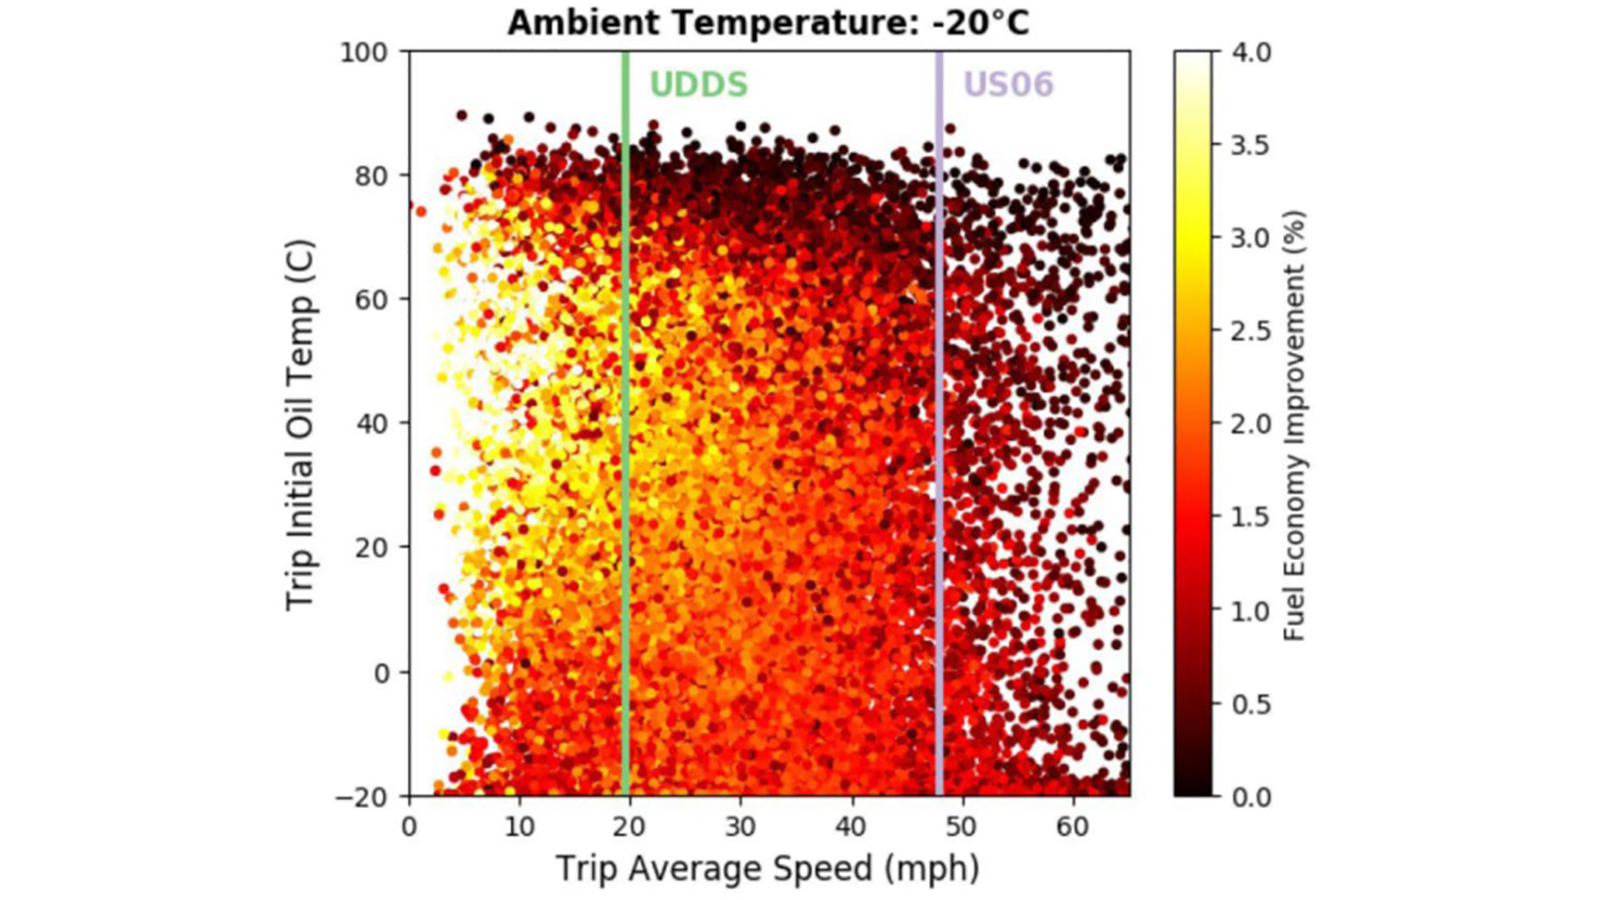 Fuel economy improvement attributed to the 2-Layer technology at the trip level in association with initial engine oil temperature for the baseline simulation and the trip average speed. (Image by National Renewable Energy Laboratory (NREL) of Golden, Colorado.)